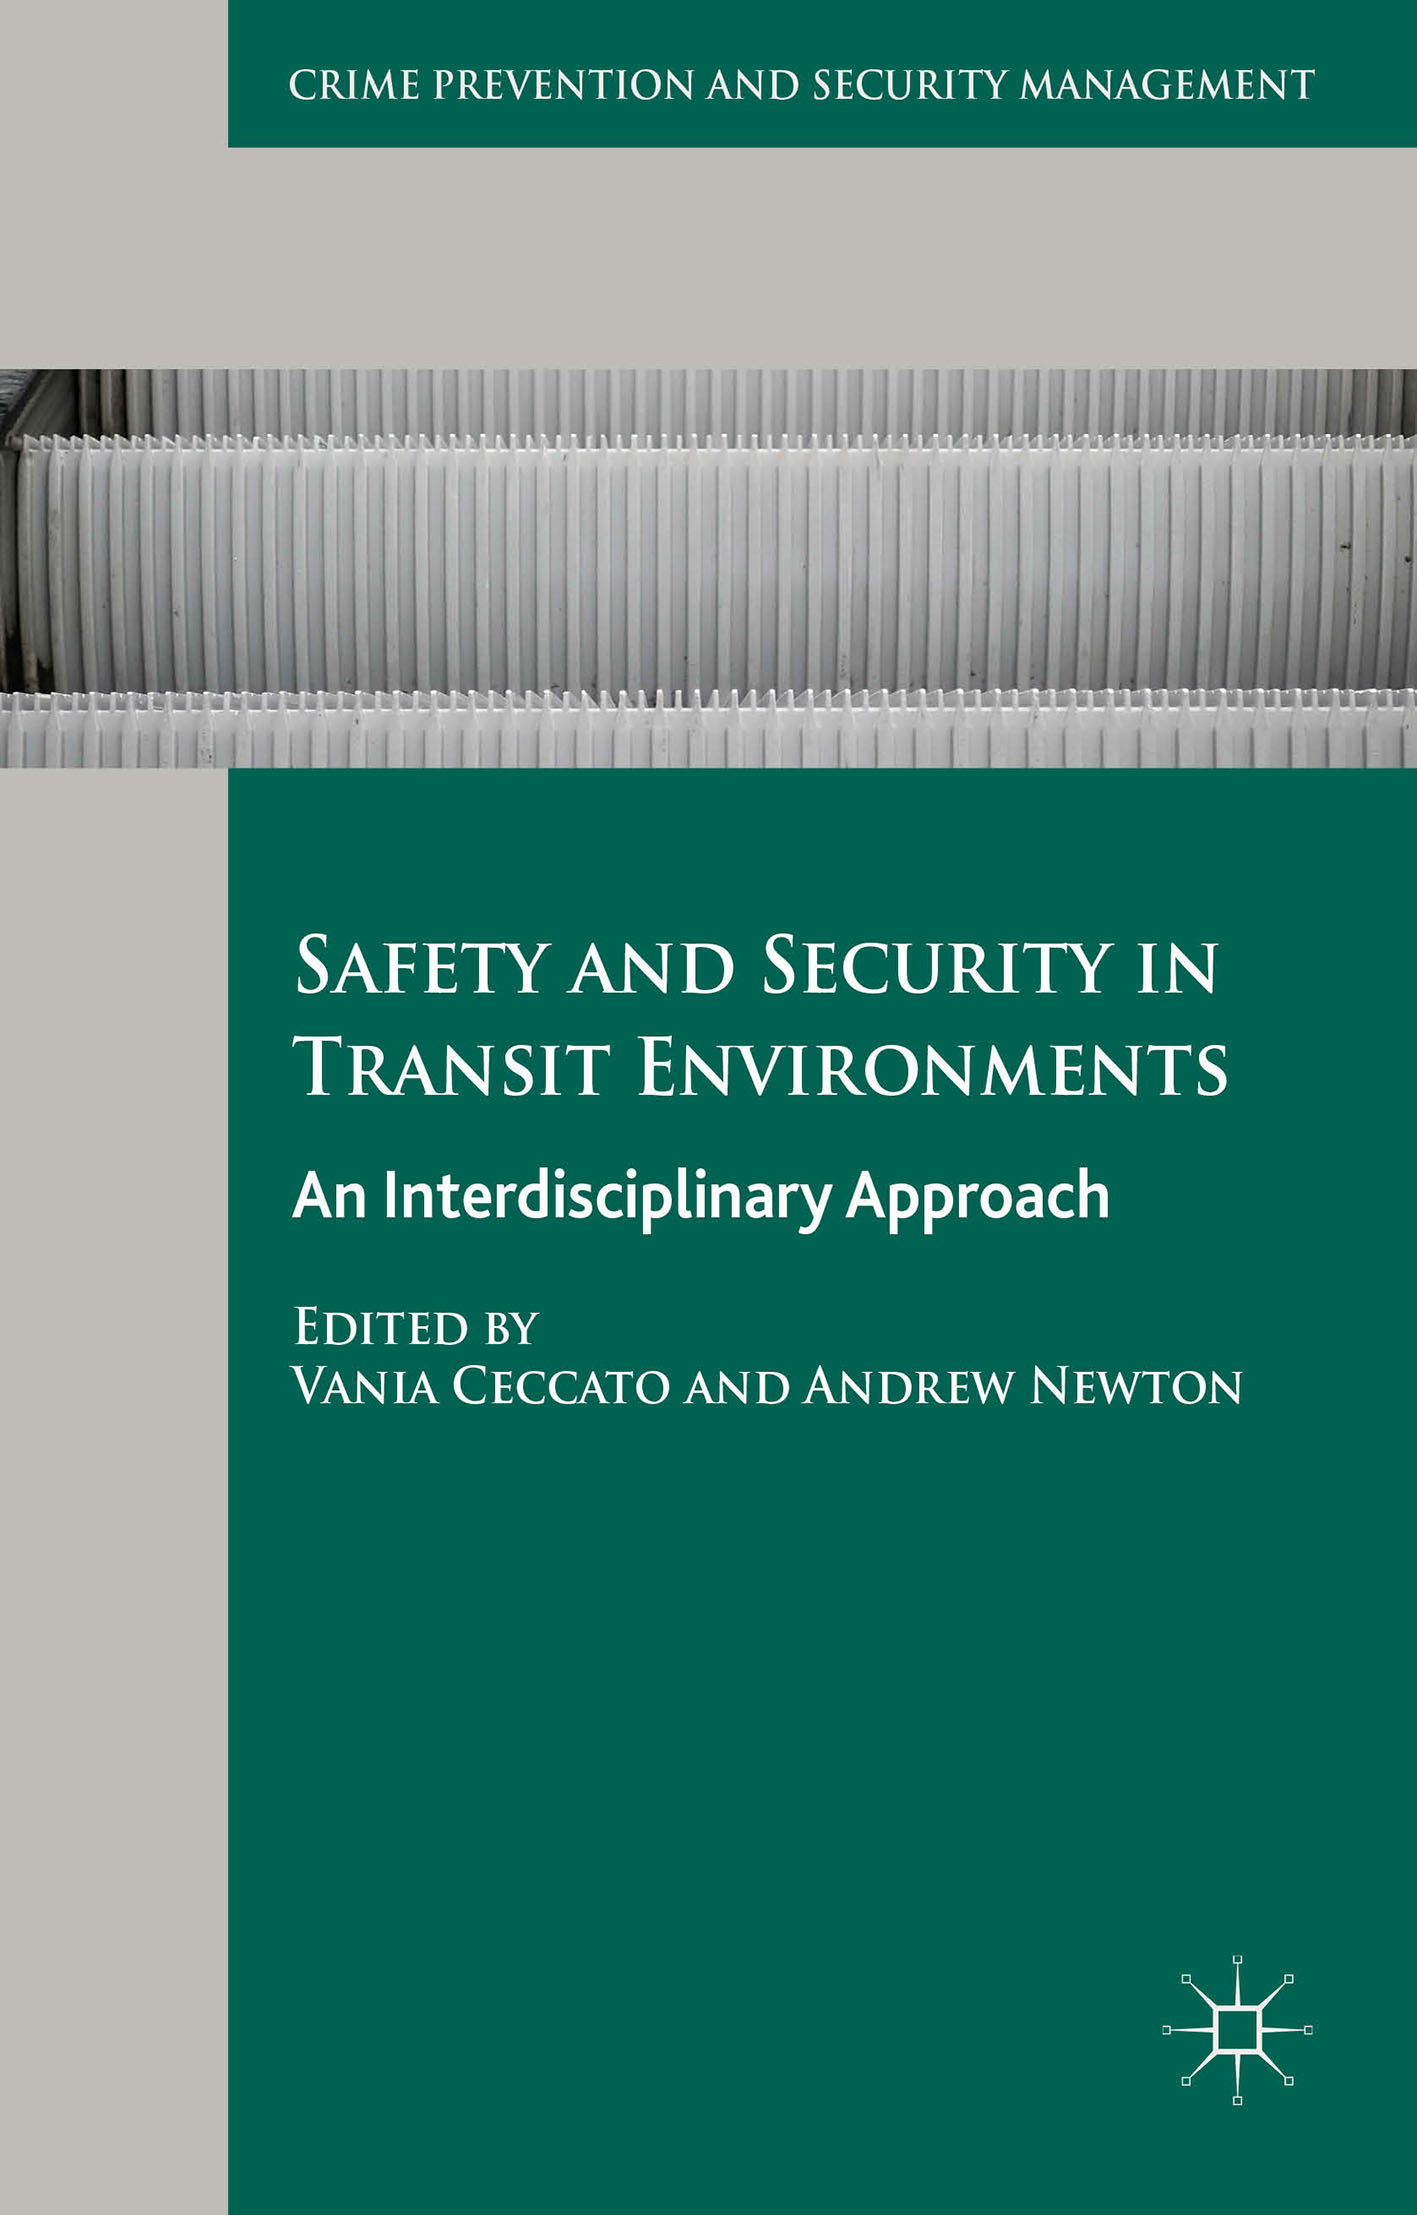 Download Ebook Safety and Security in Transit Environments by Vania Ceccato Pdf